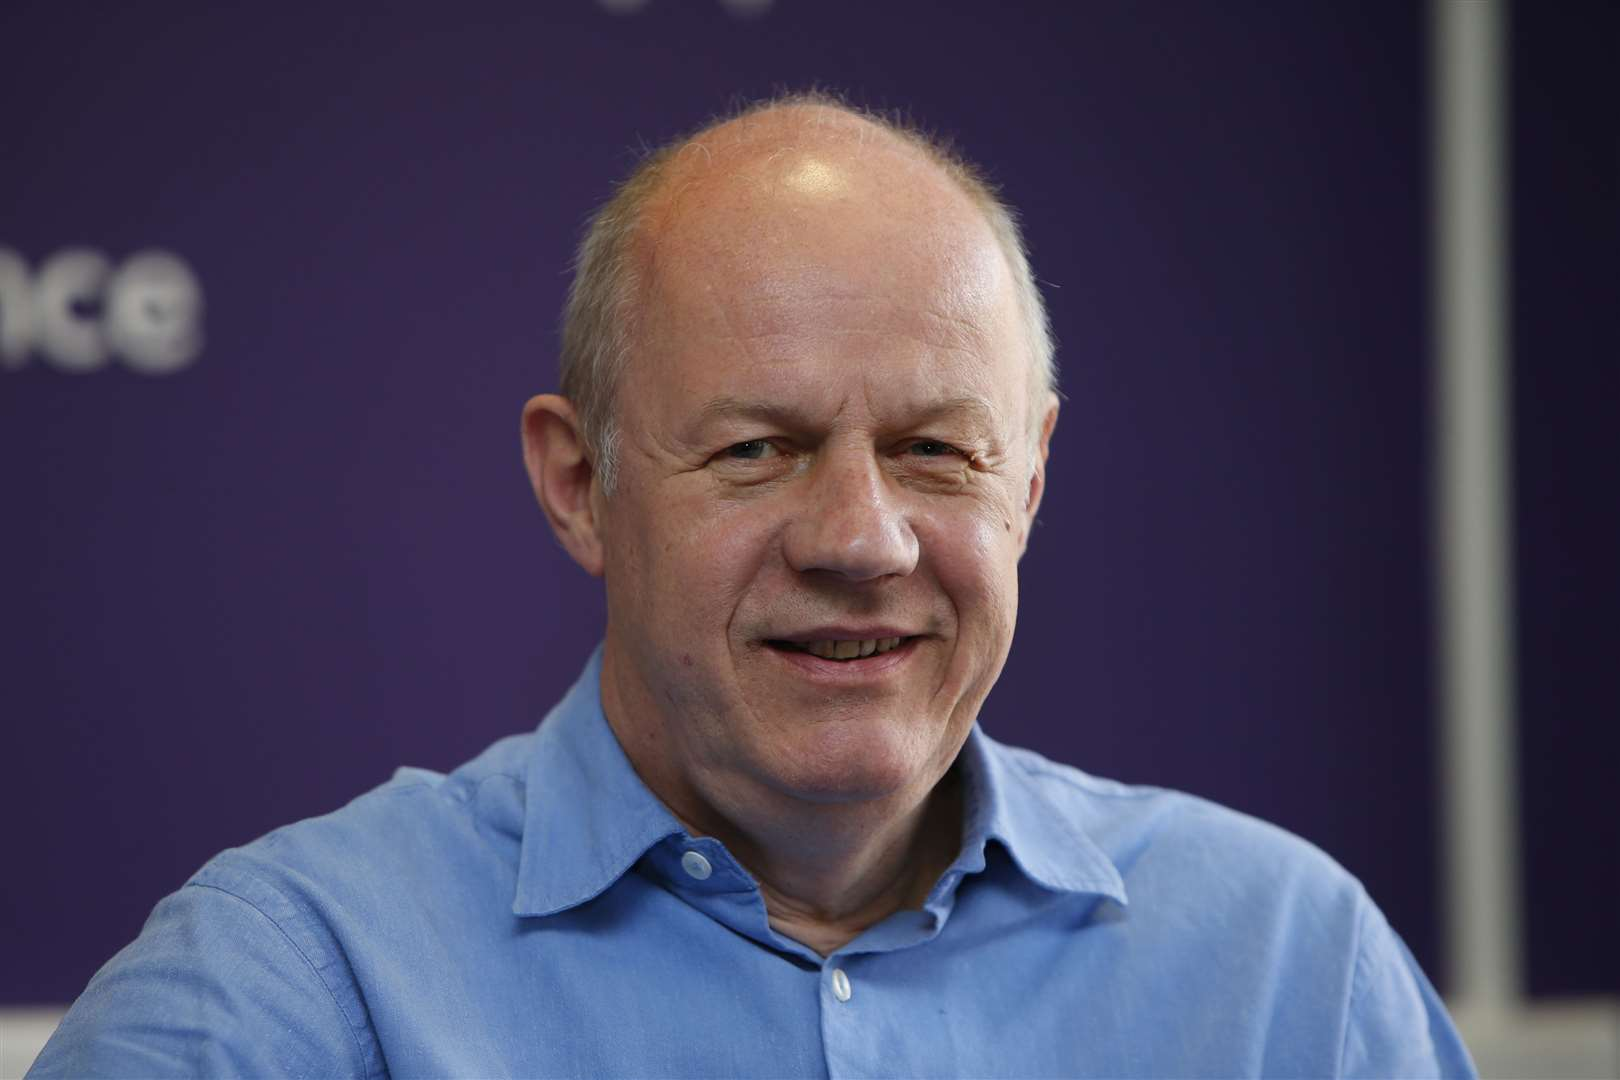 Damian Green was re-elected as Ashford's MP in the General Election